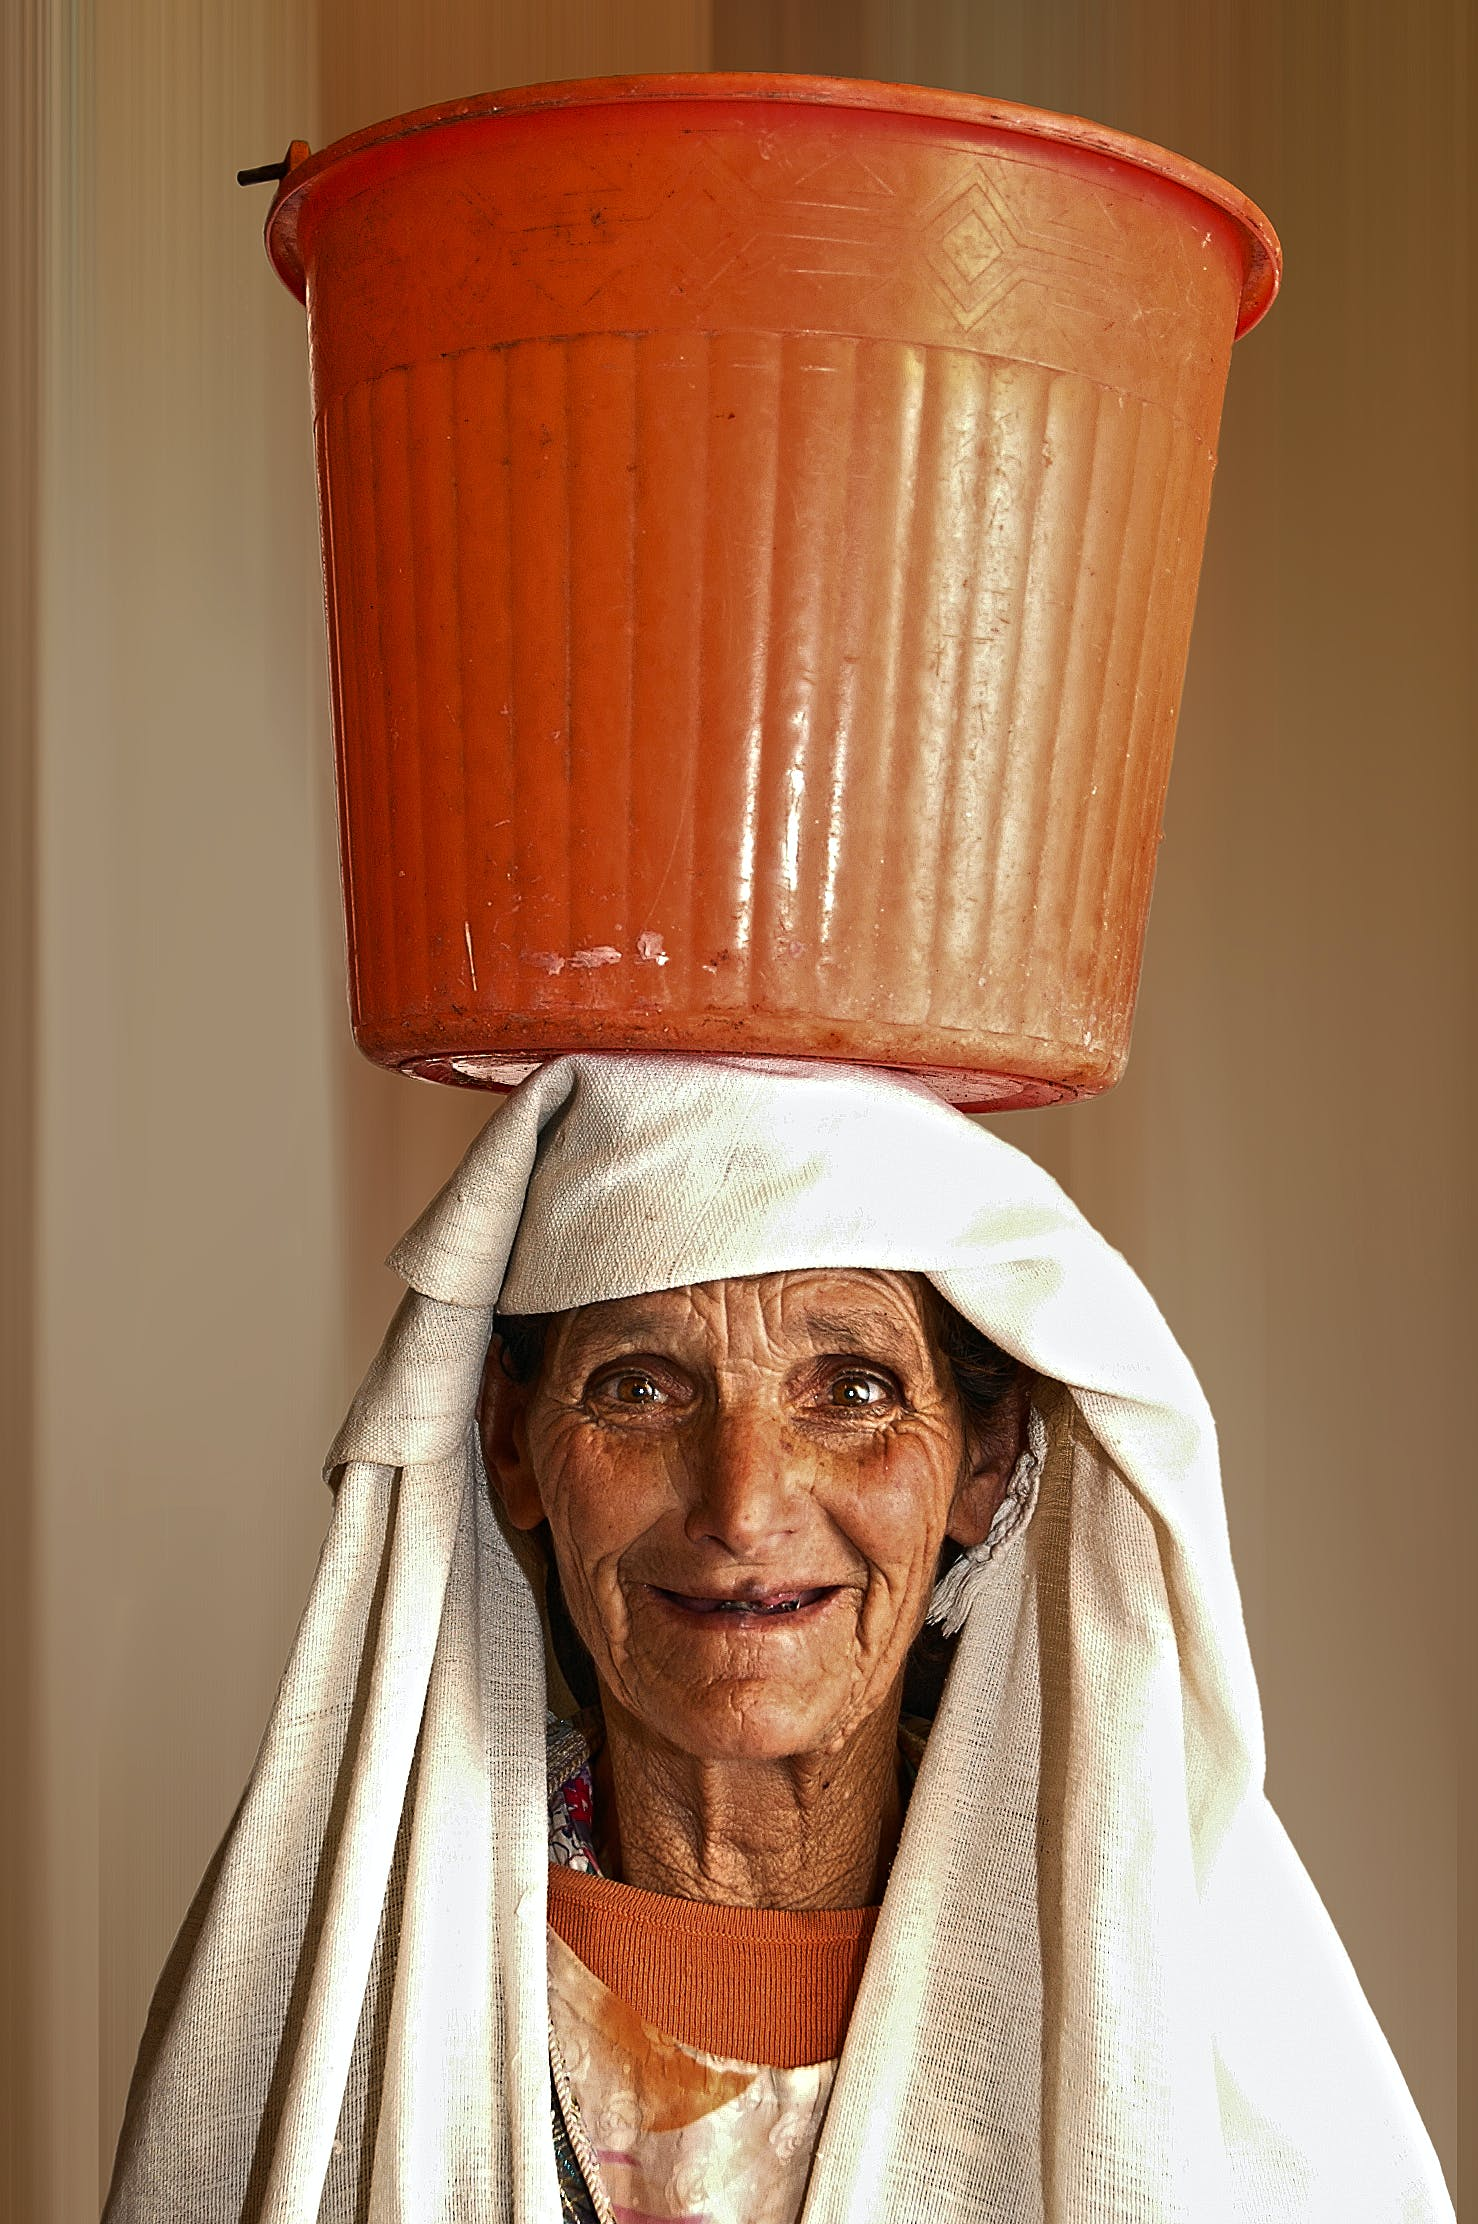 Portrait Photo of Woman Carrying Orange Plastic Pail on Head